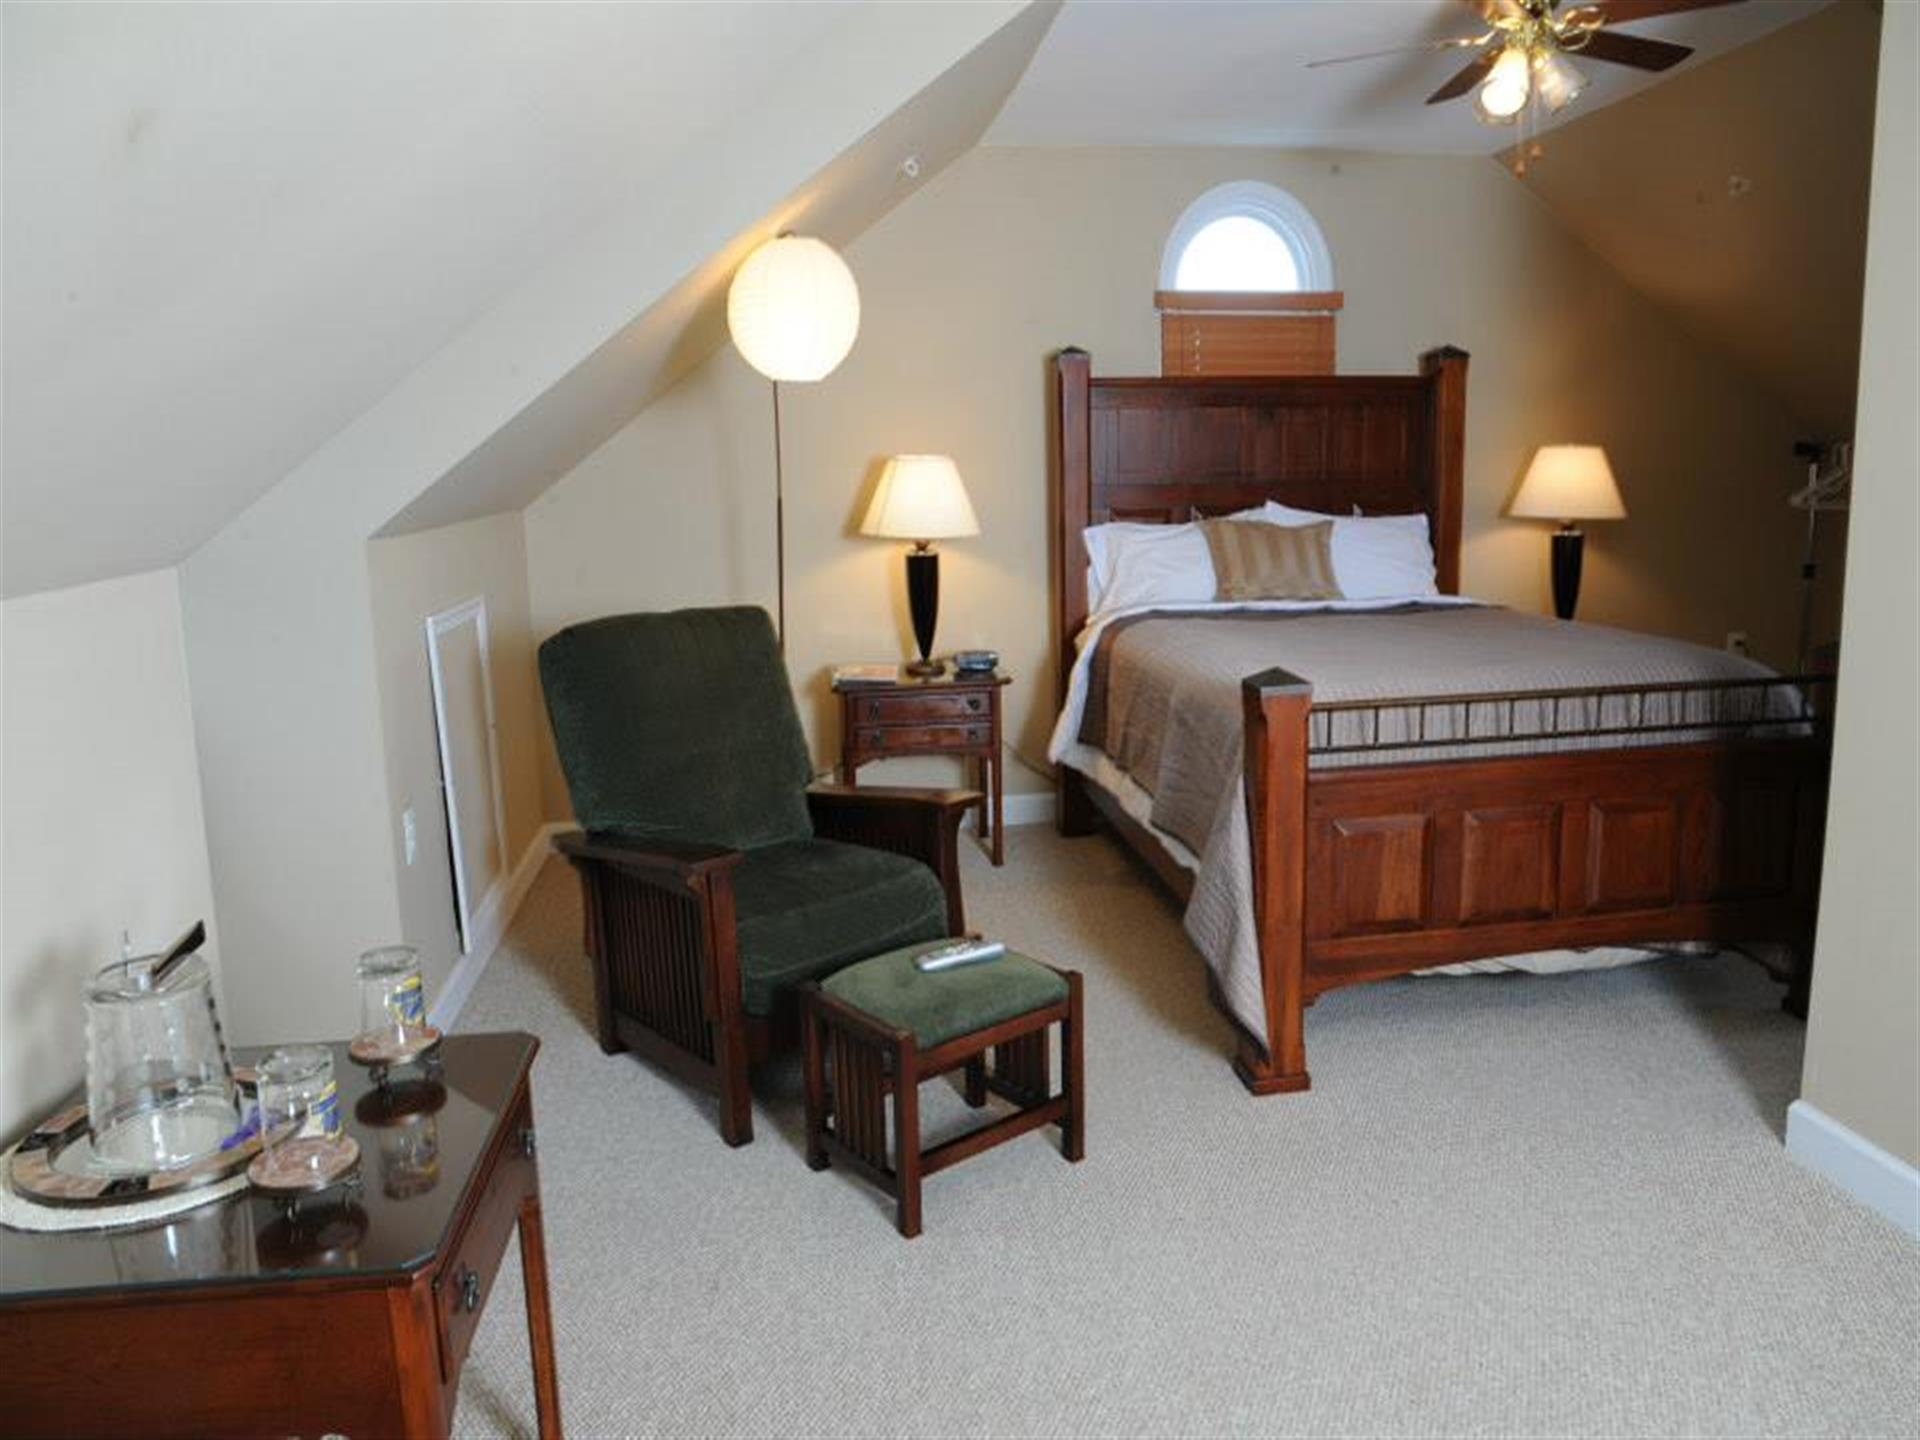 Suite 3 bedroom. Queen size bed and dark wood furniture.